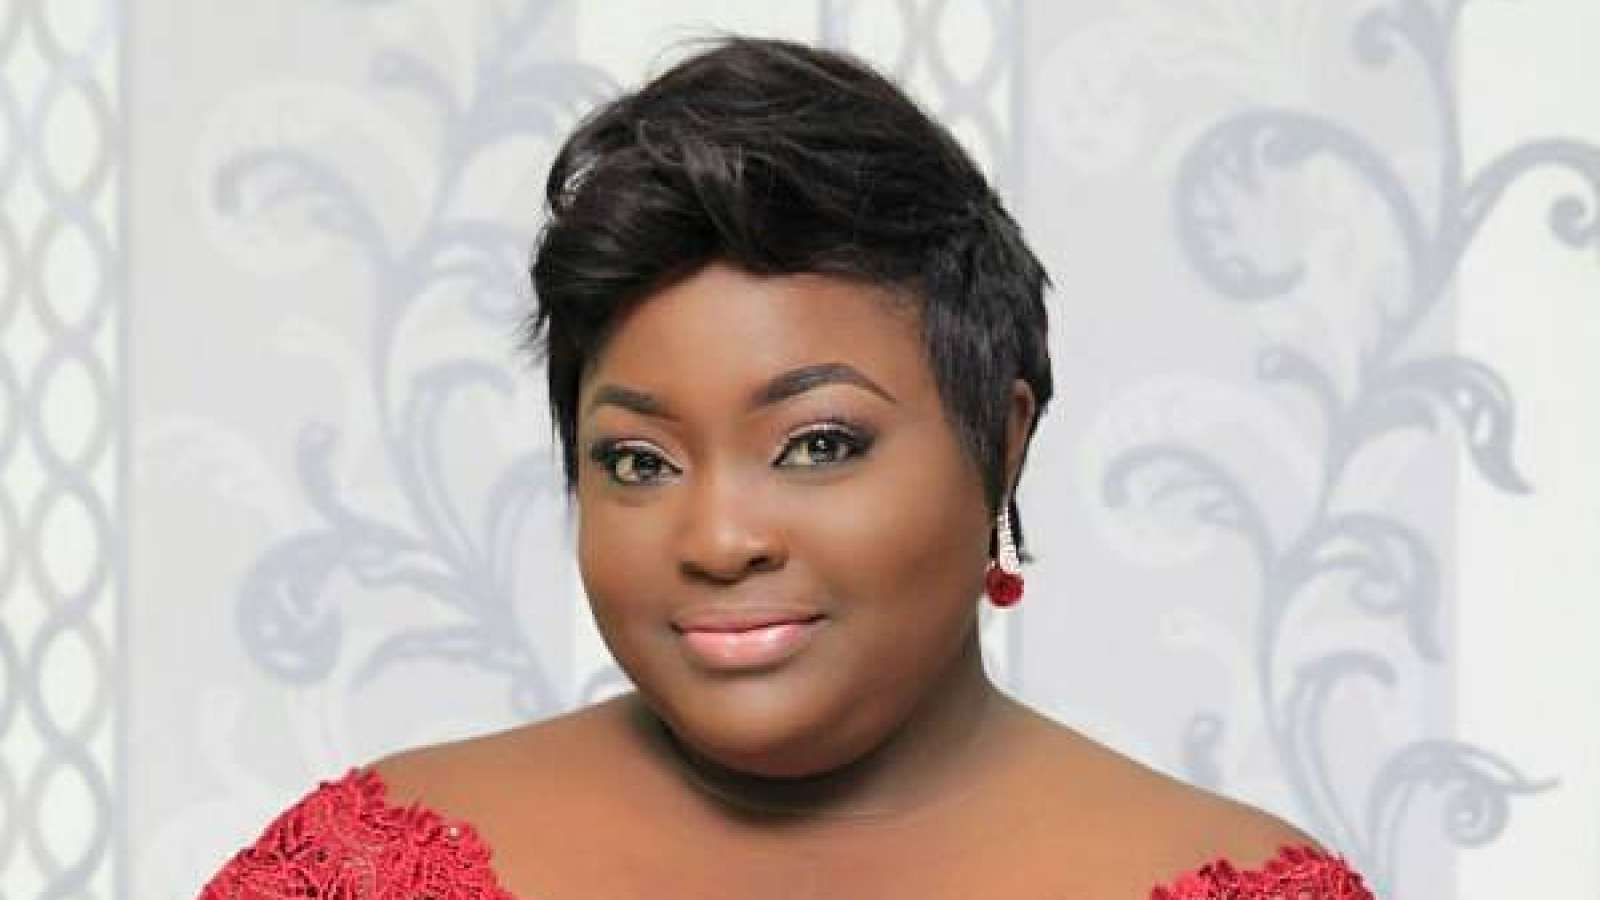 Vaccinate against 'Hepatitis B' and the likes before kissing in movies – Actress Roselyn Ngissah